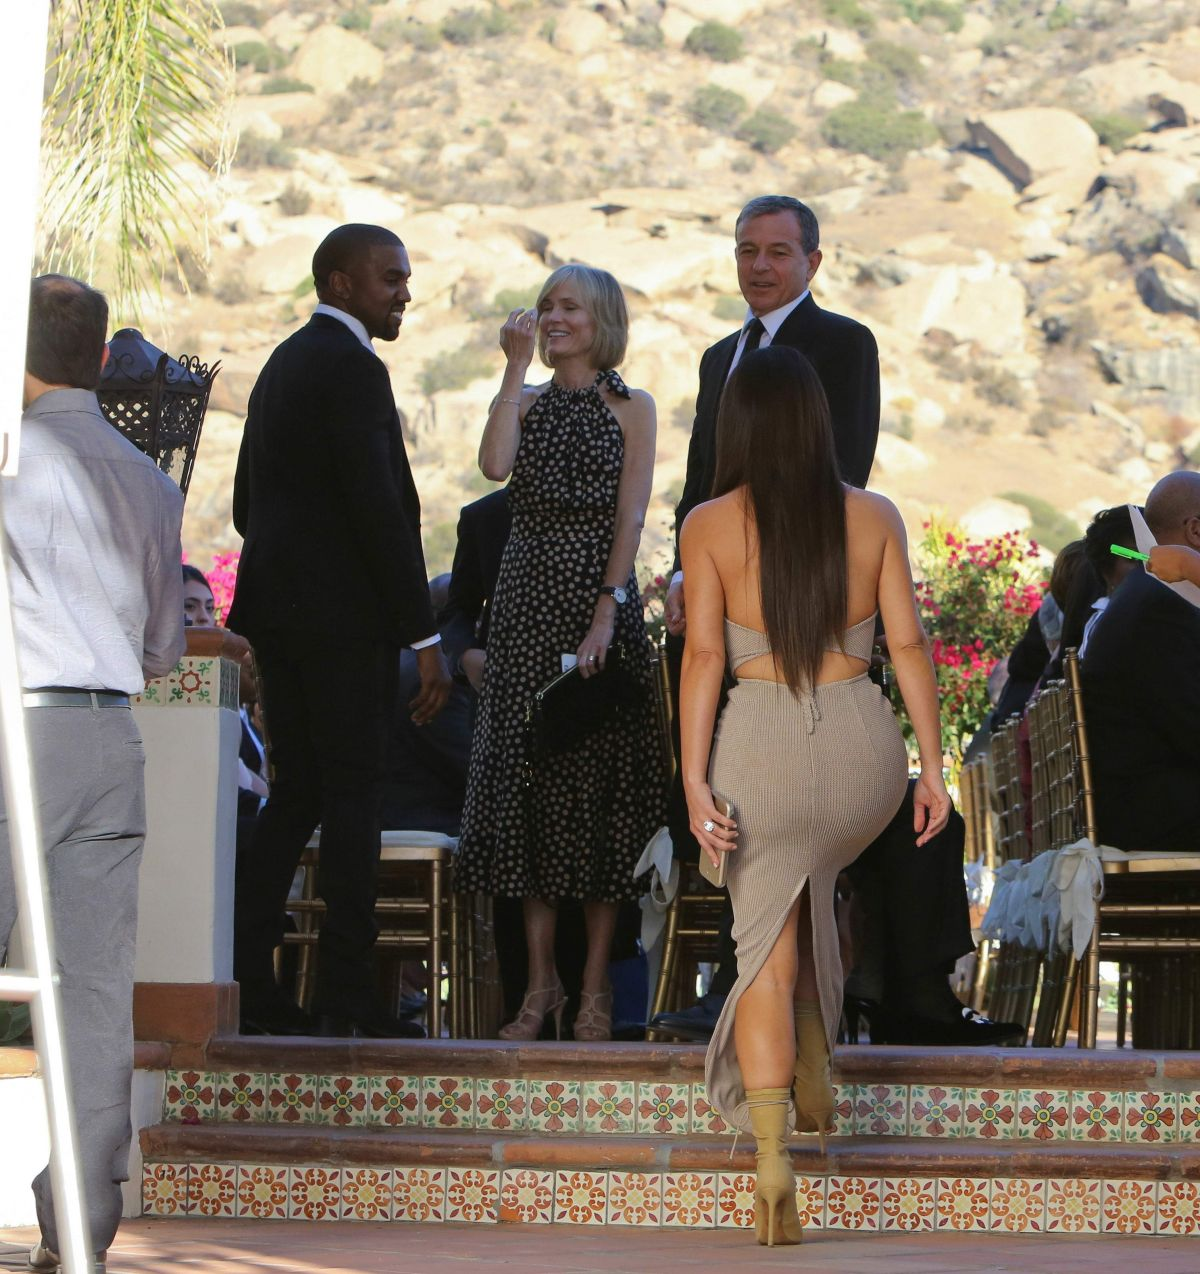 Kim Kardashian And Kanye West At Wedding Of Their Friends In Simi Valley 09 23